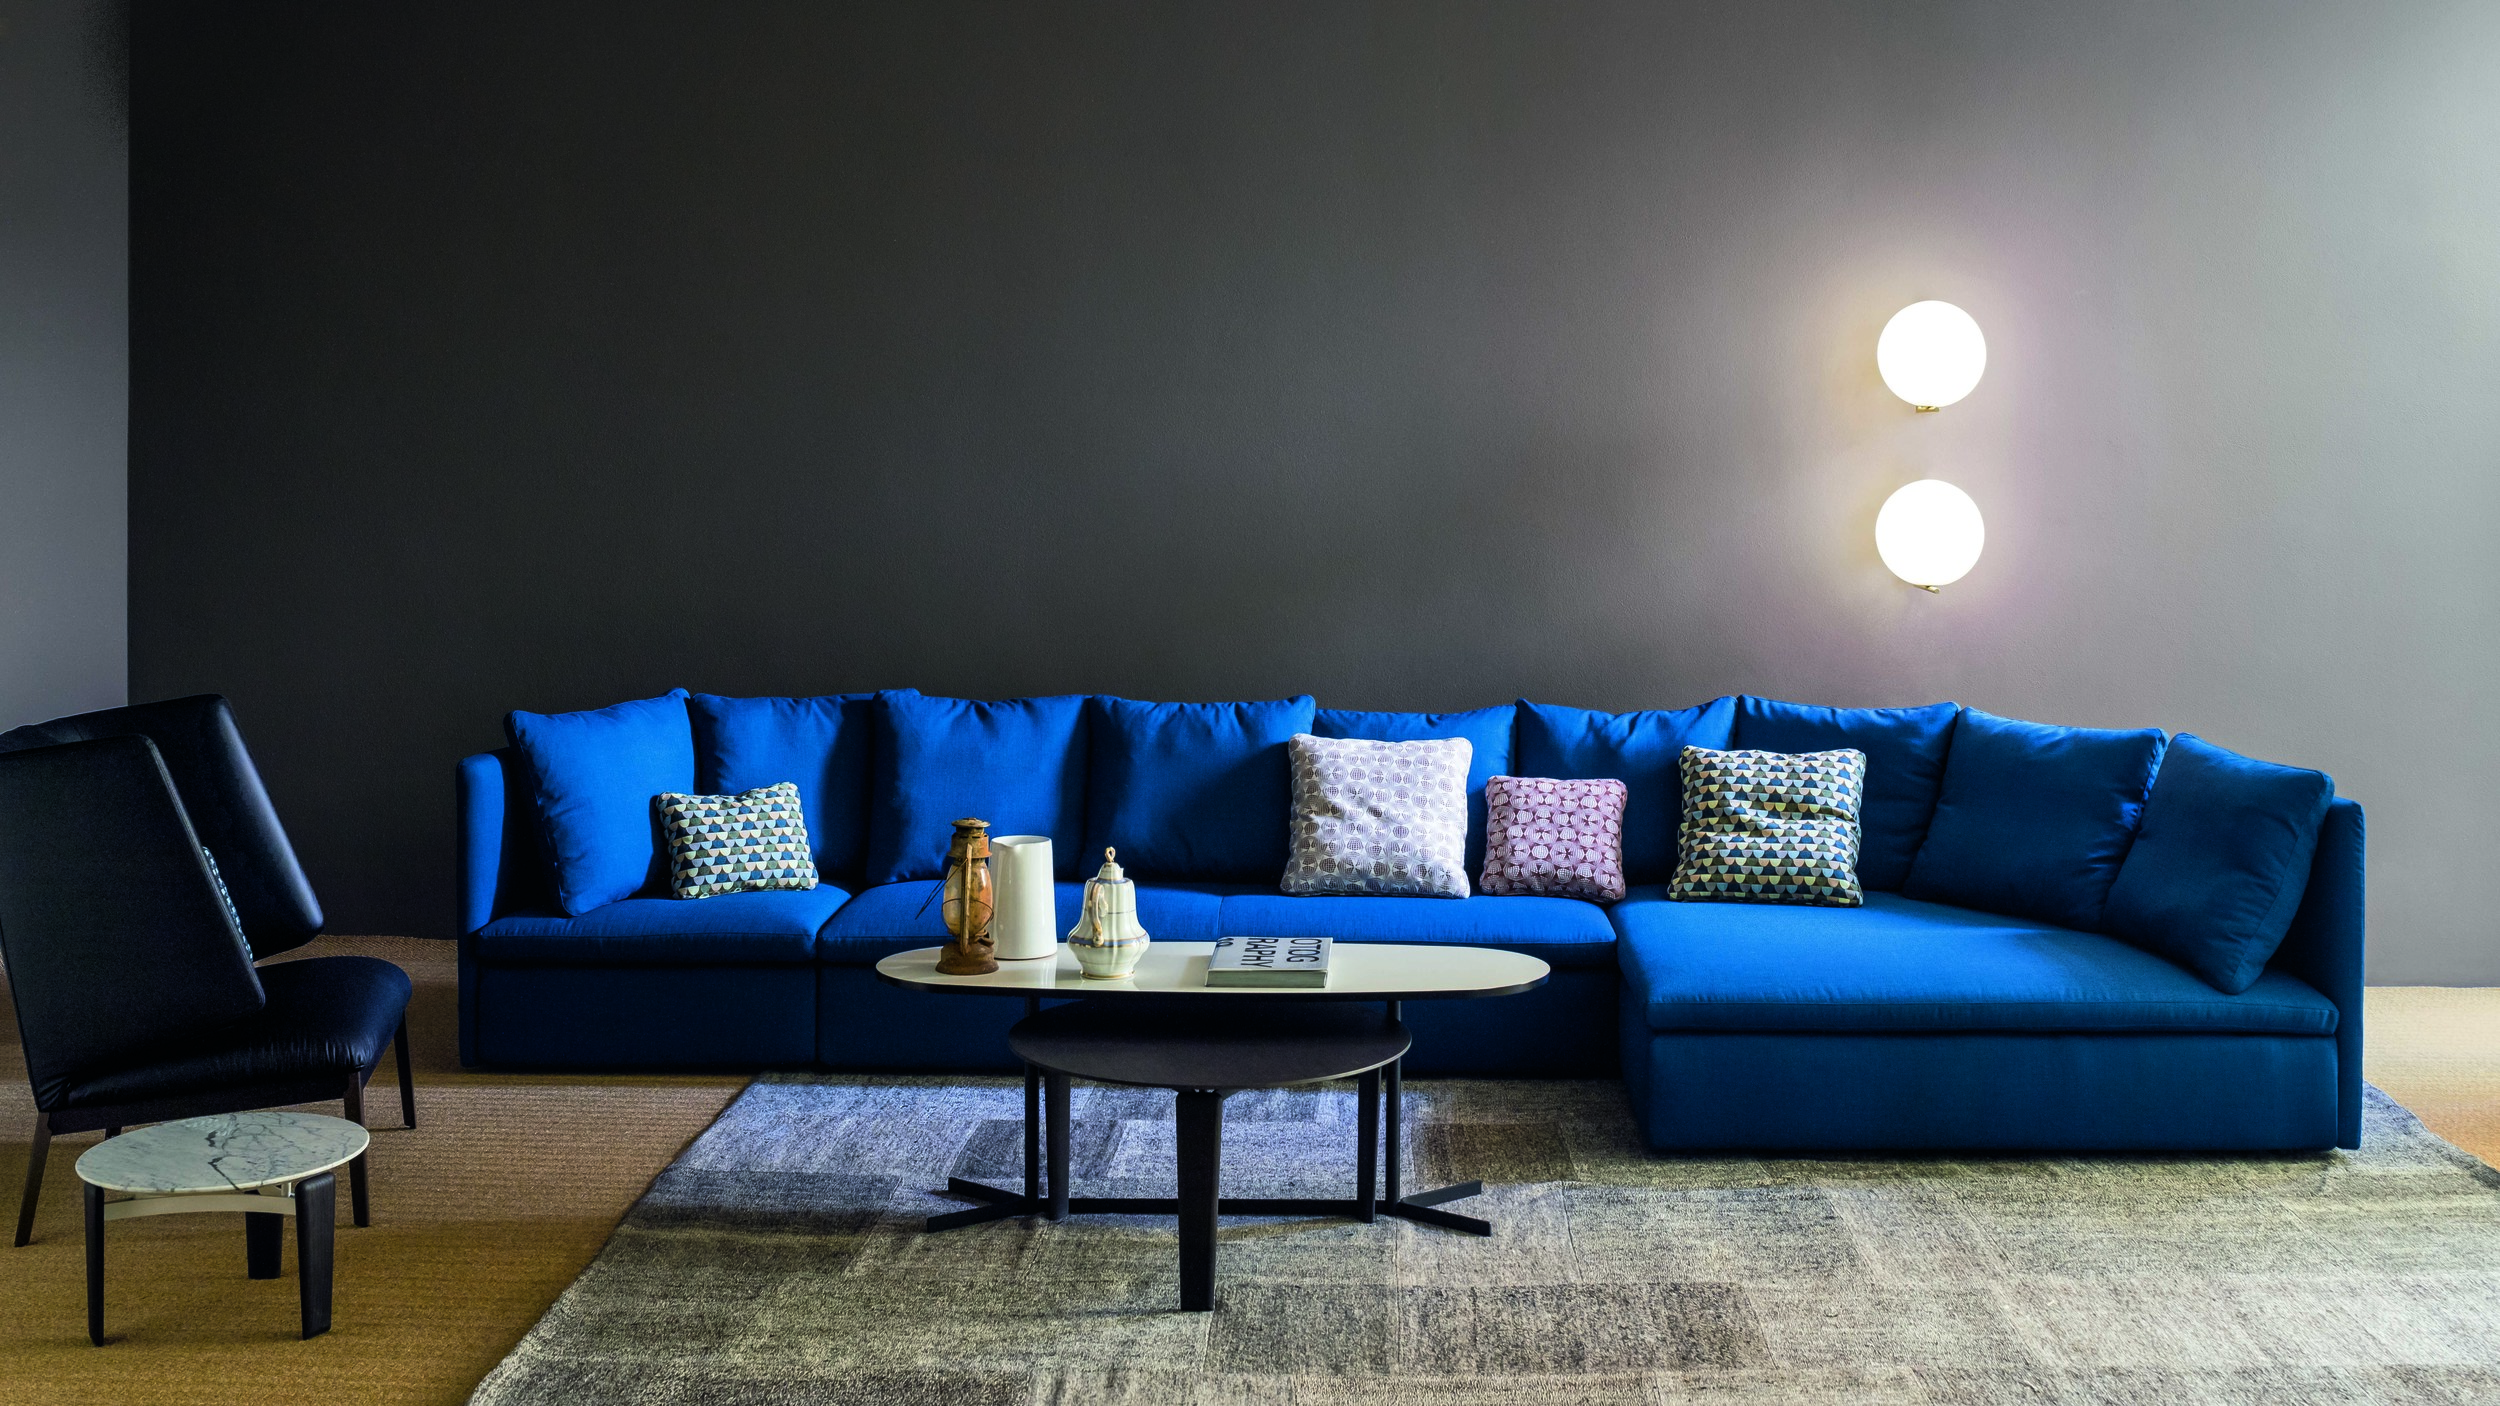 Hug Wingchair from Arflex and Tablet side table from Arflex and Mangold Sofa from Arflex